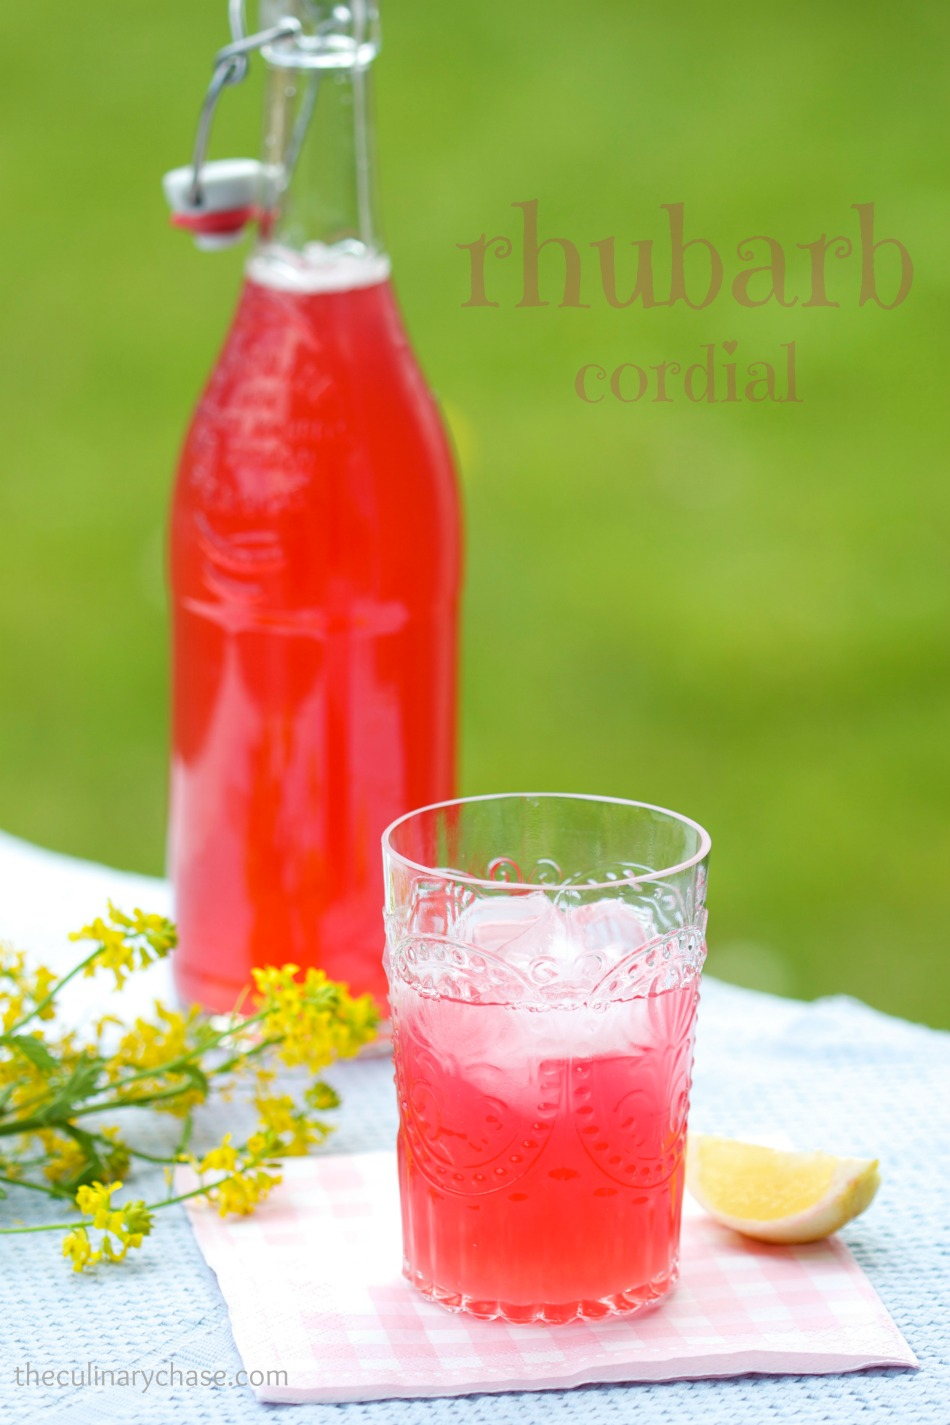 rhubarb cordial by The Culinary Chase